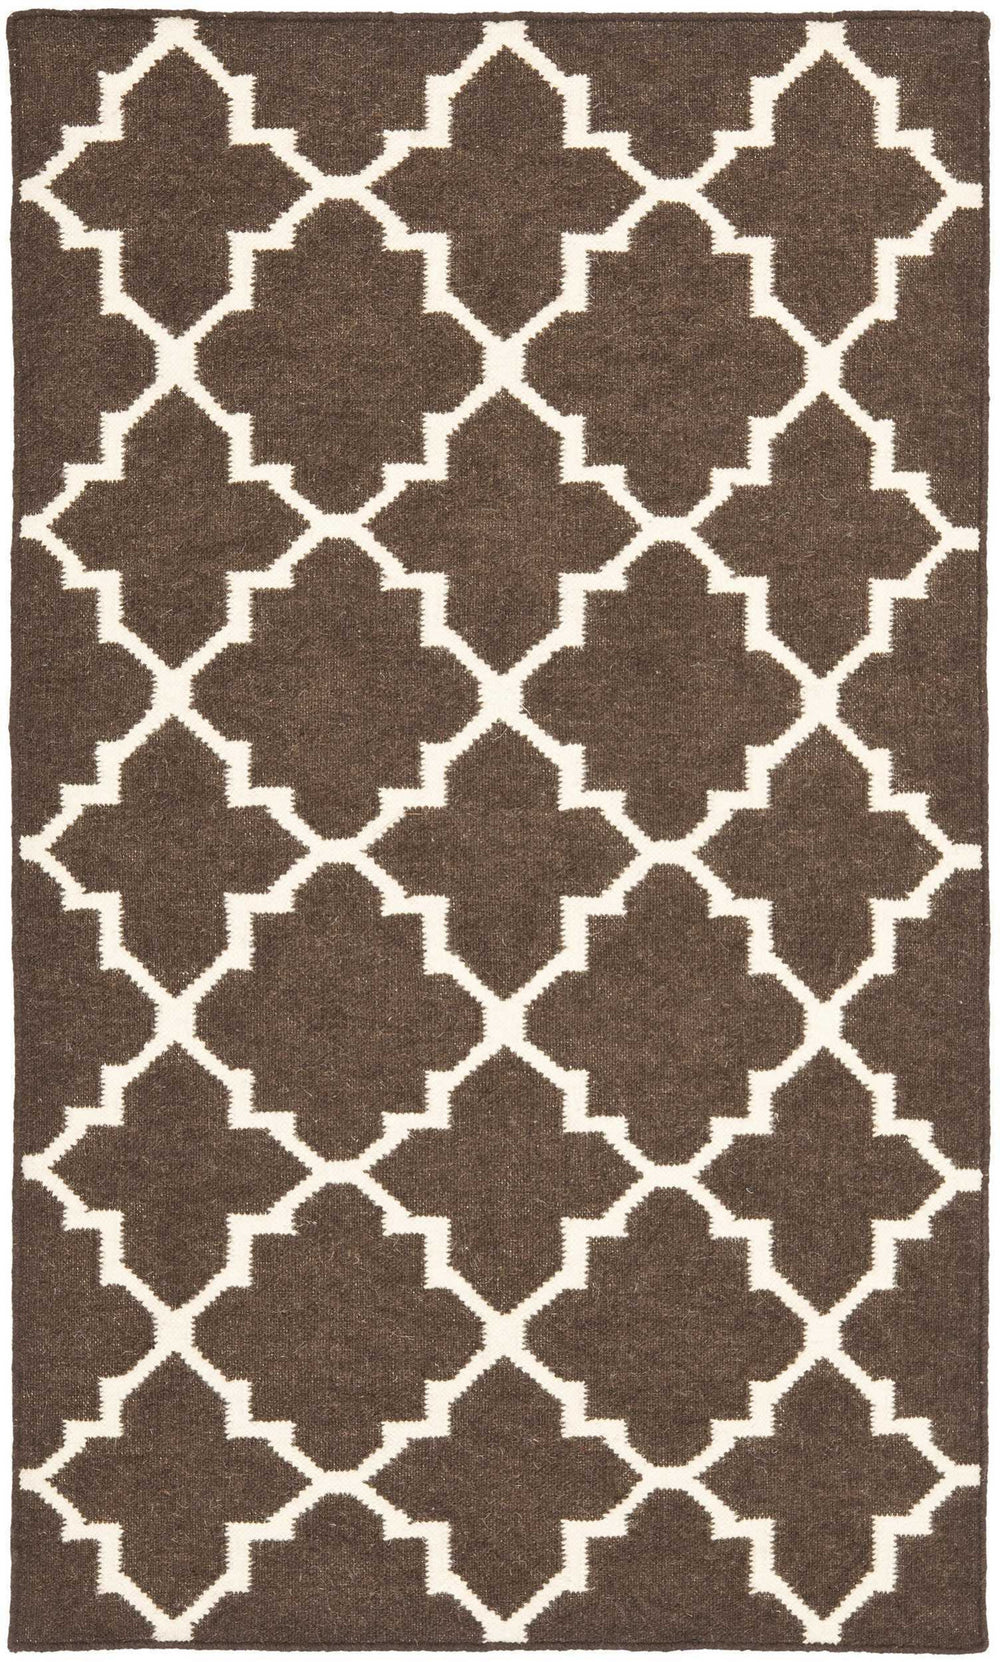 Safavieh Dhurries DHU554 Area Rug